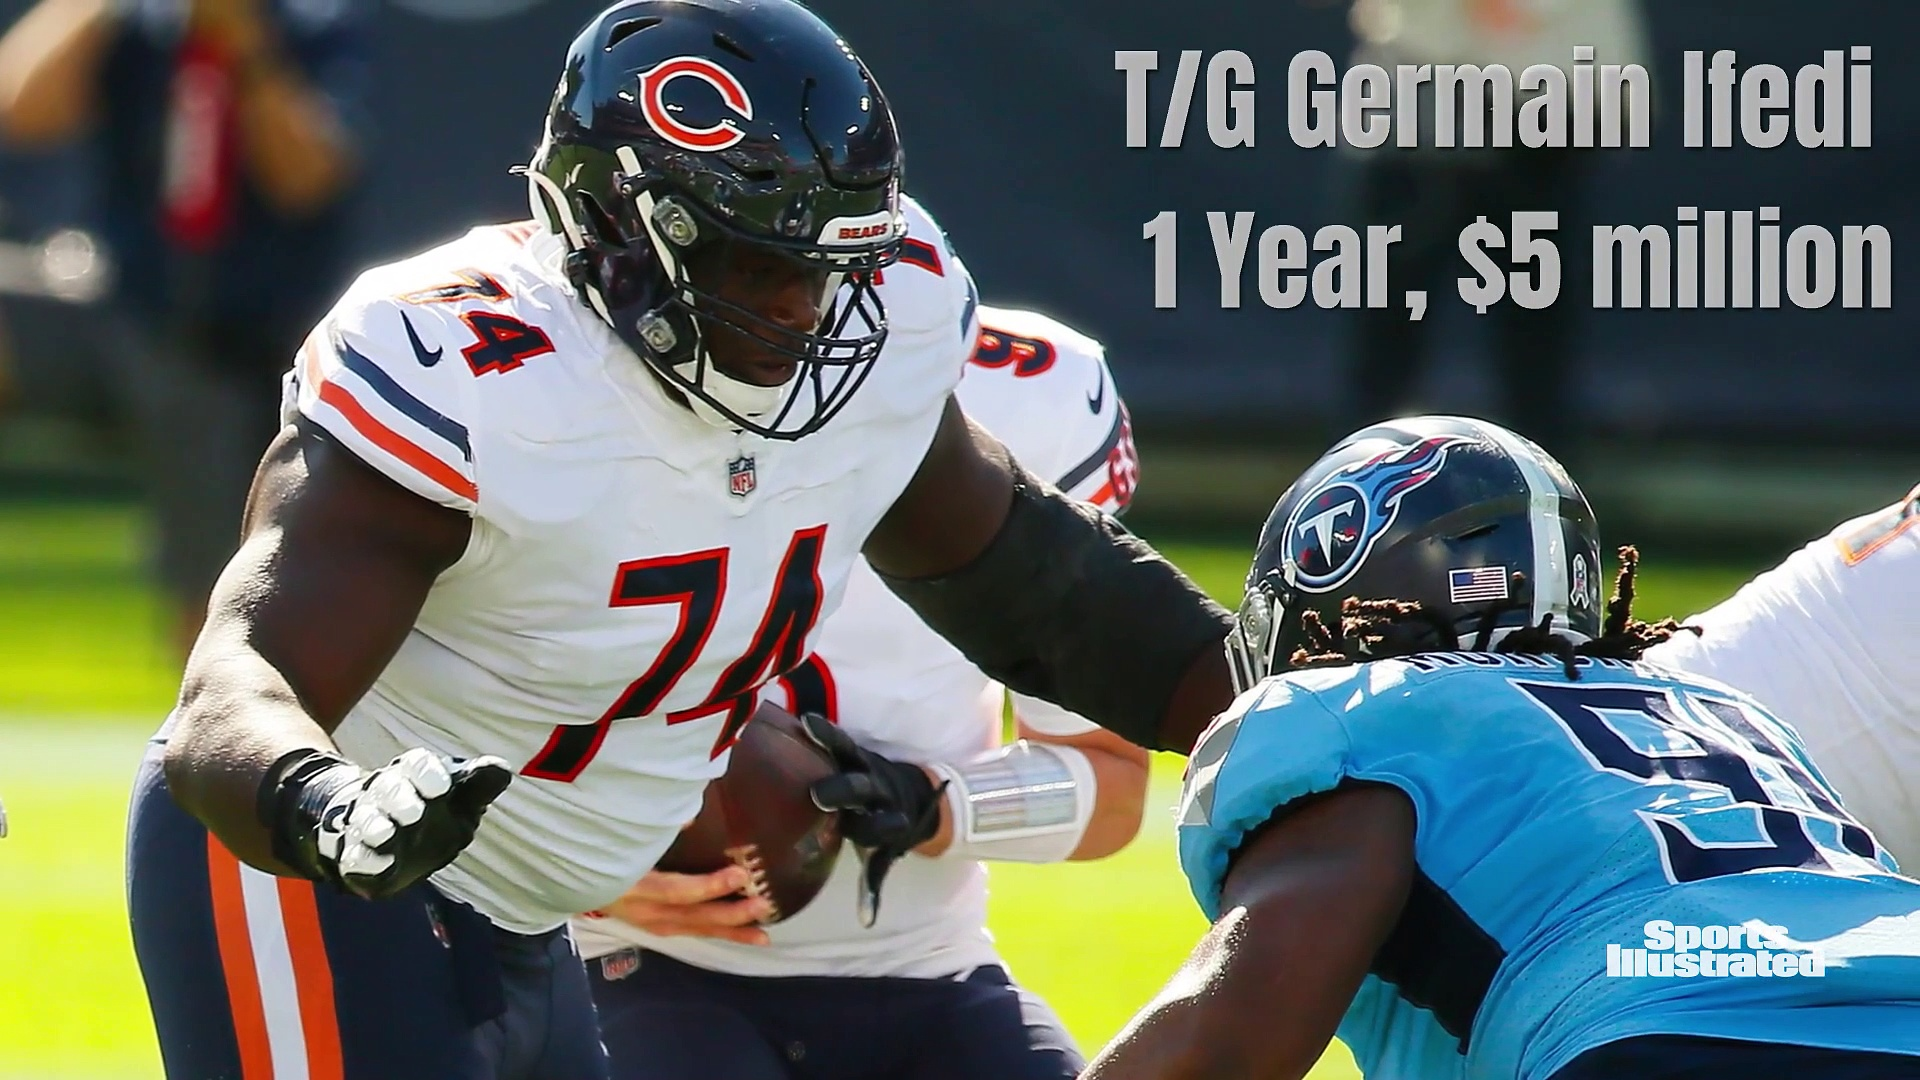 Bears Free Agency Signings to Date